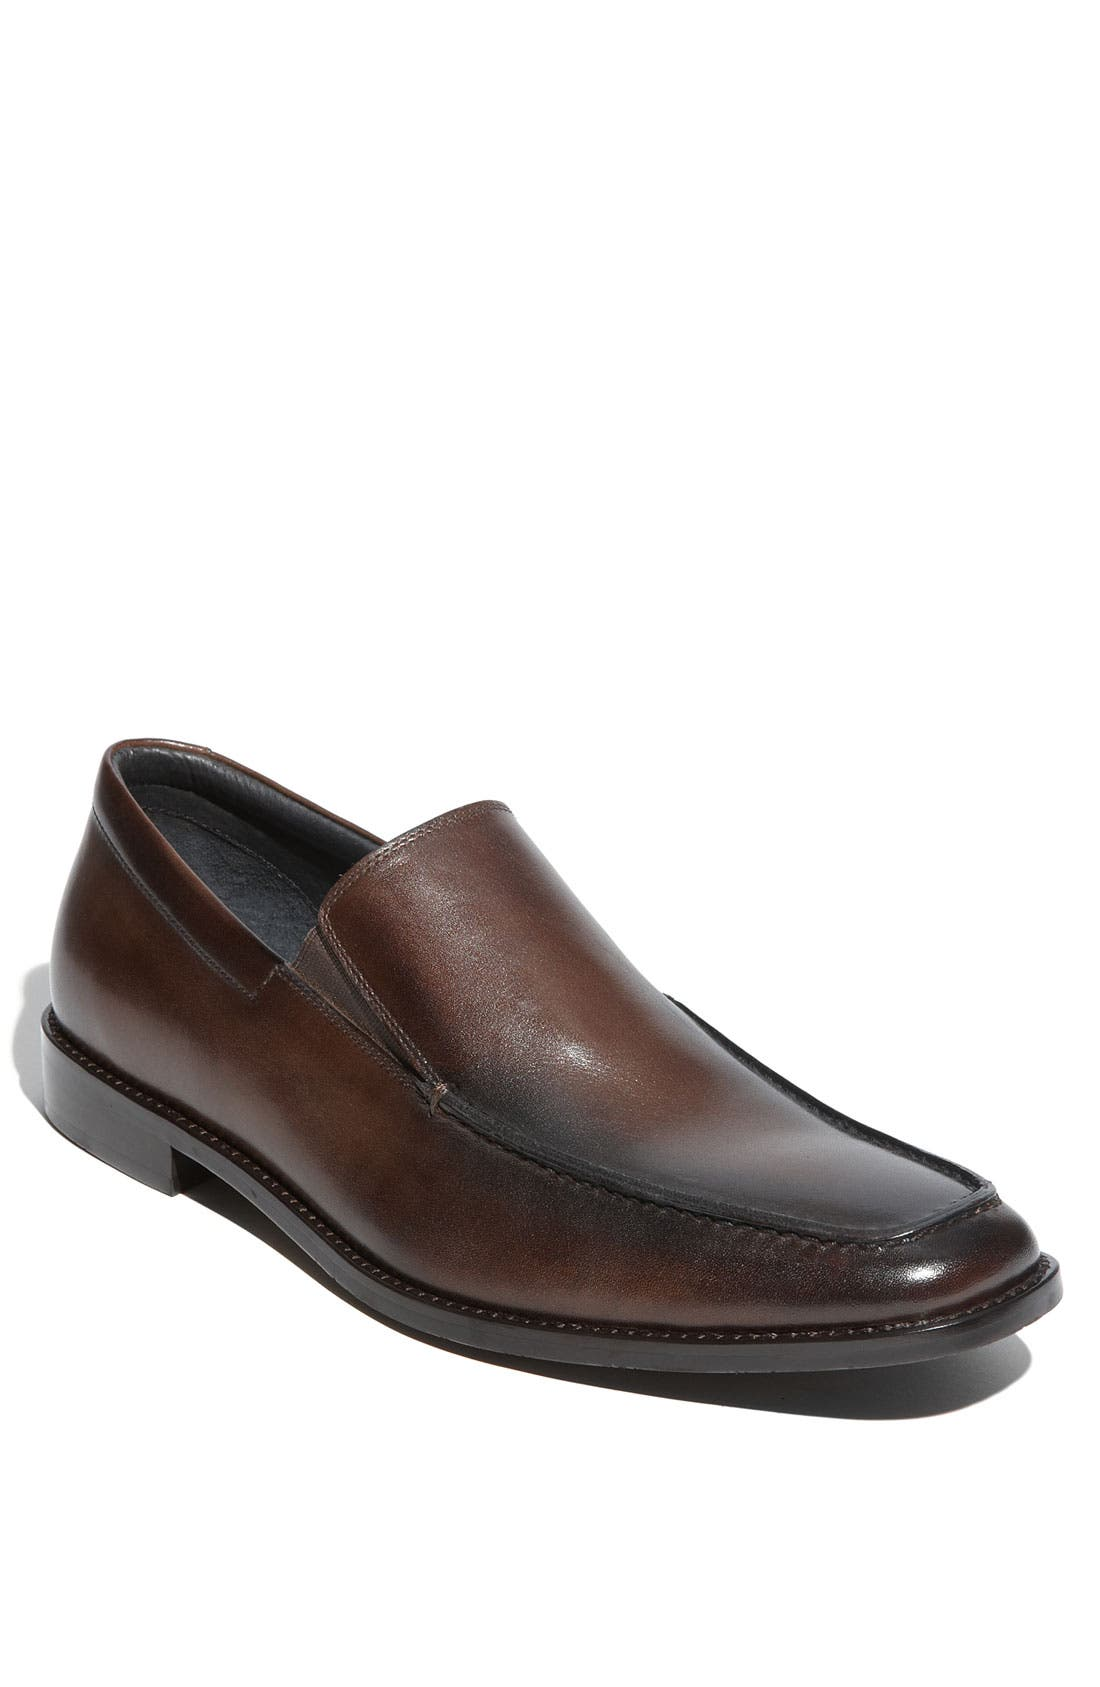 Main Image - Gordon Rush 'Madison' Venetian Loafer (Men)